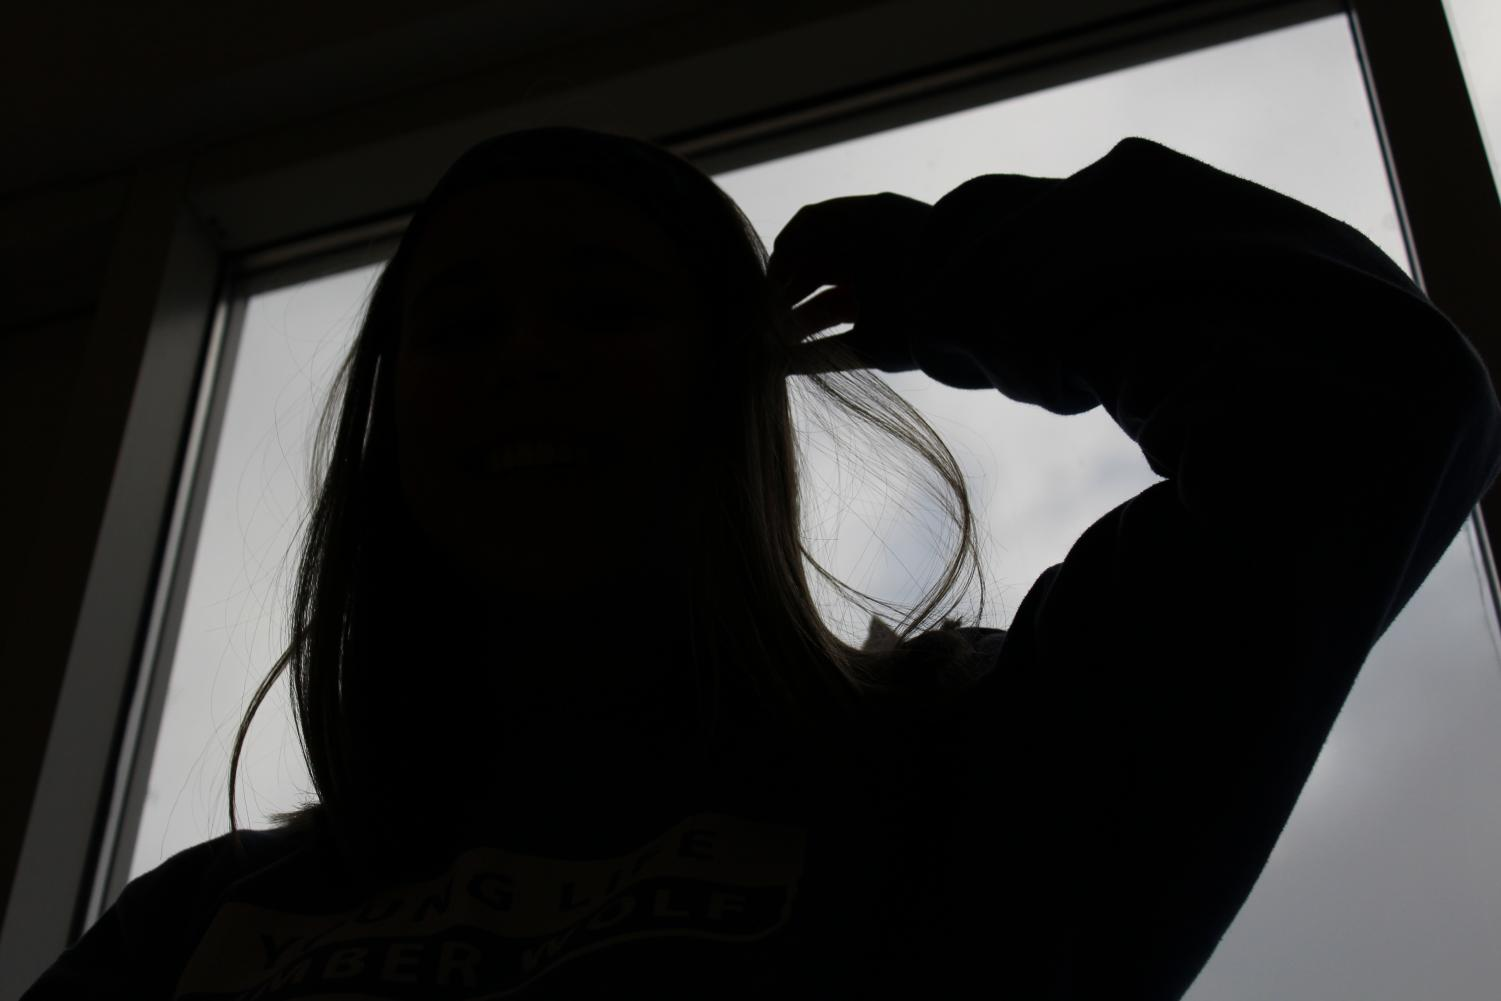 A student embracing being alone by posing in front of a window with a dark shadow outline of the student.